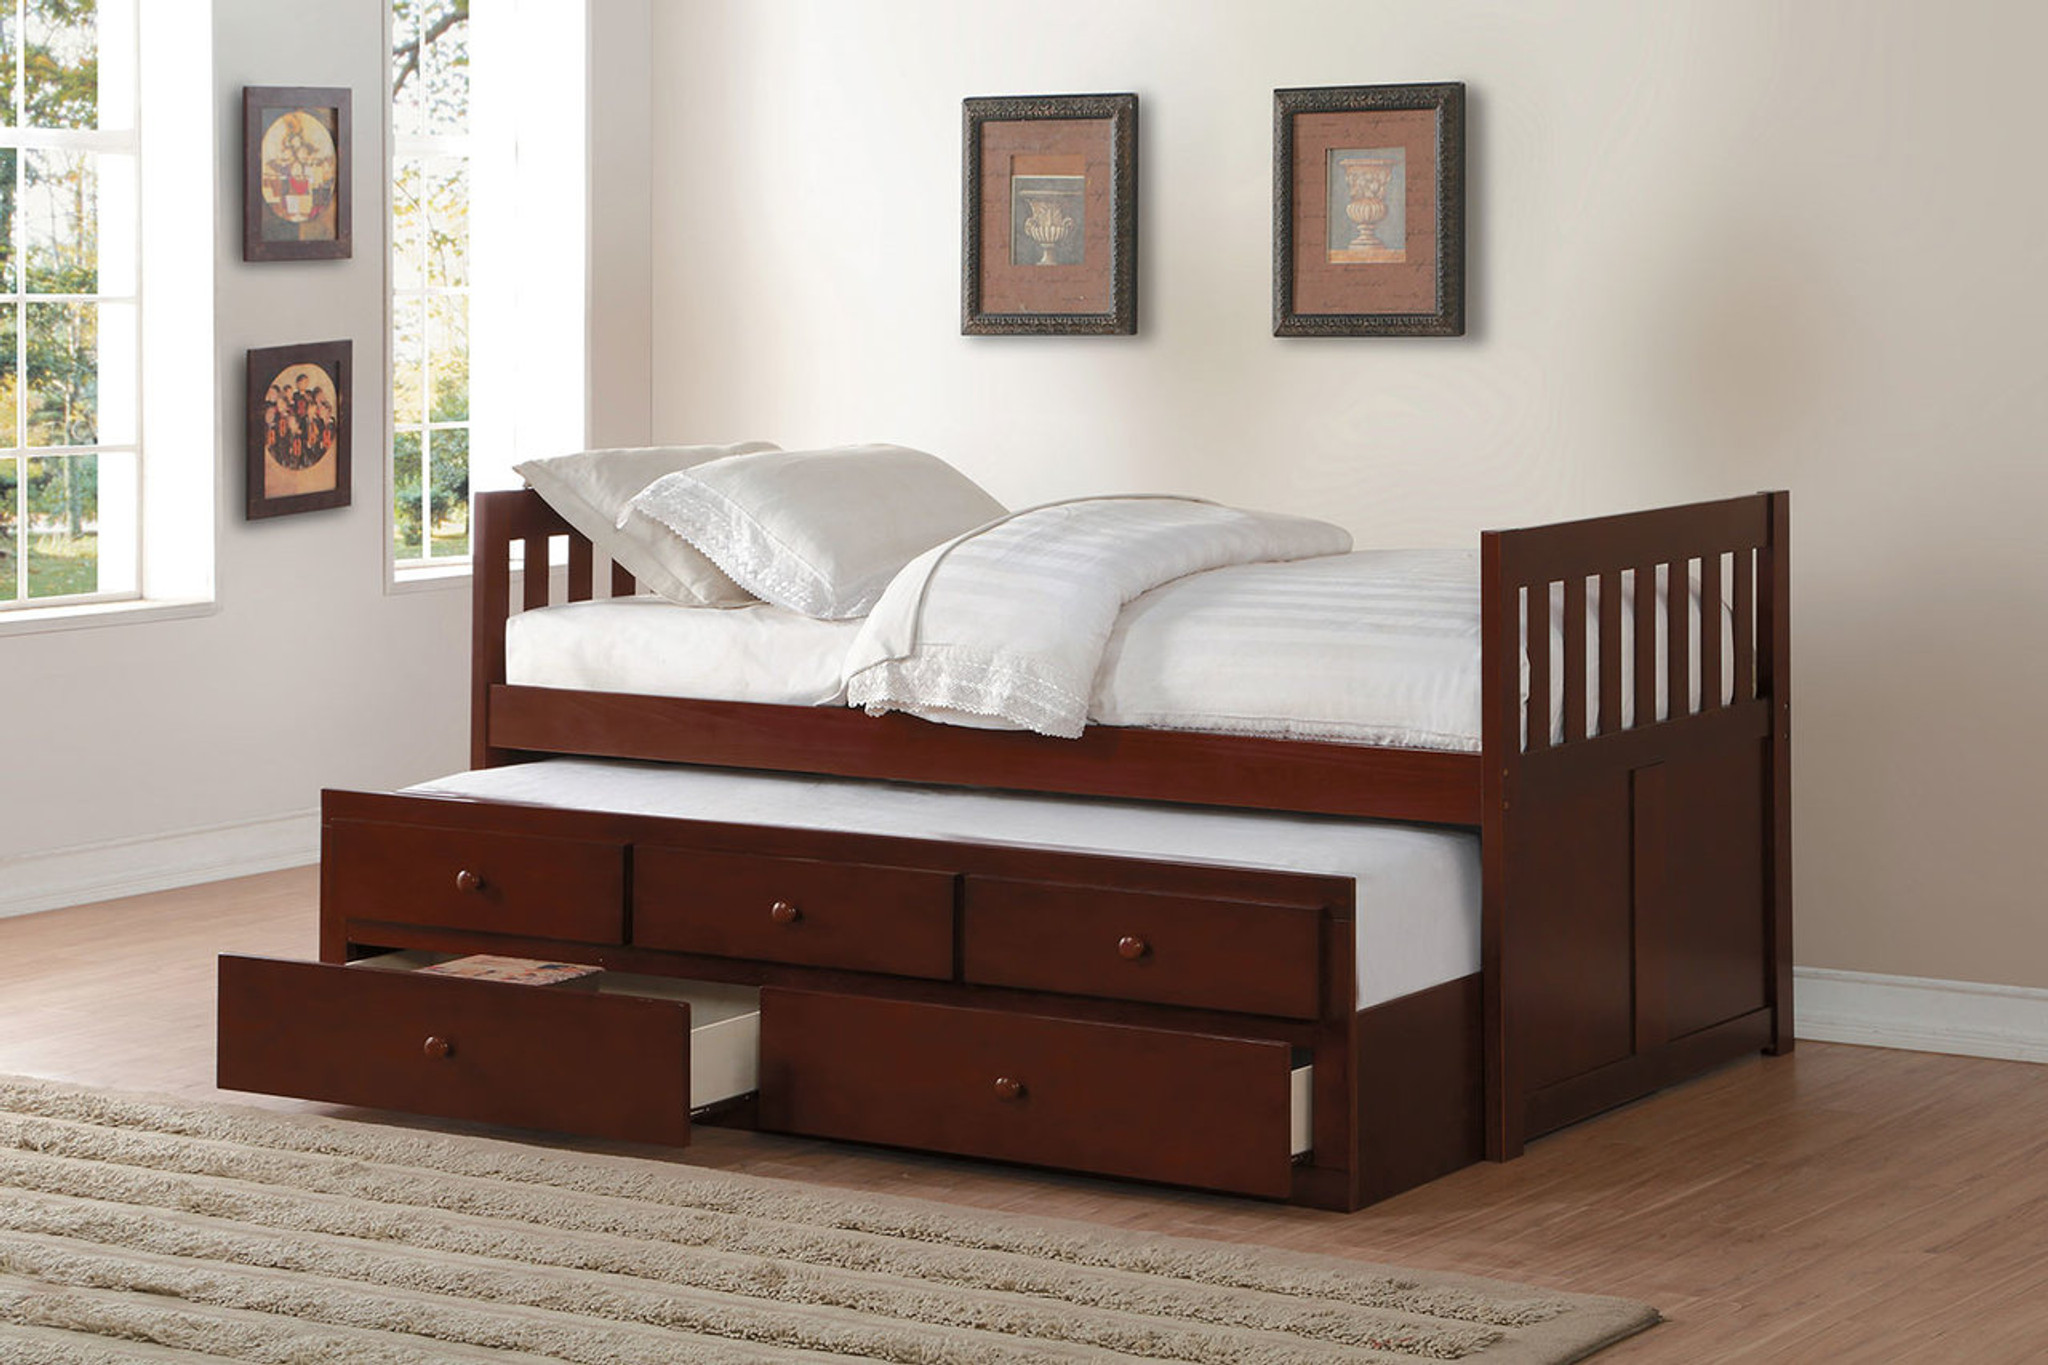 B2013prdc Rowe Twin Bed With Trundle And Storage Drawers Collection